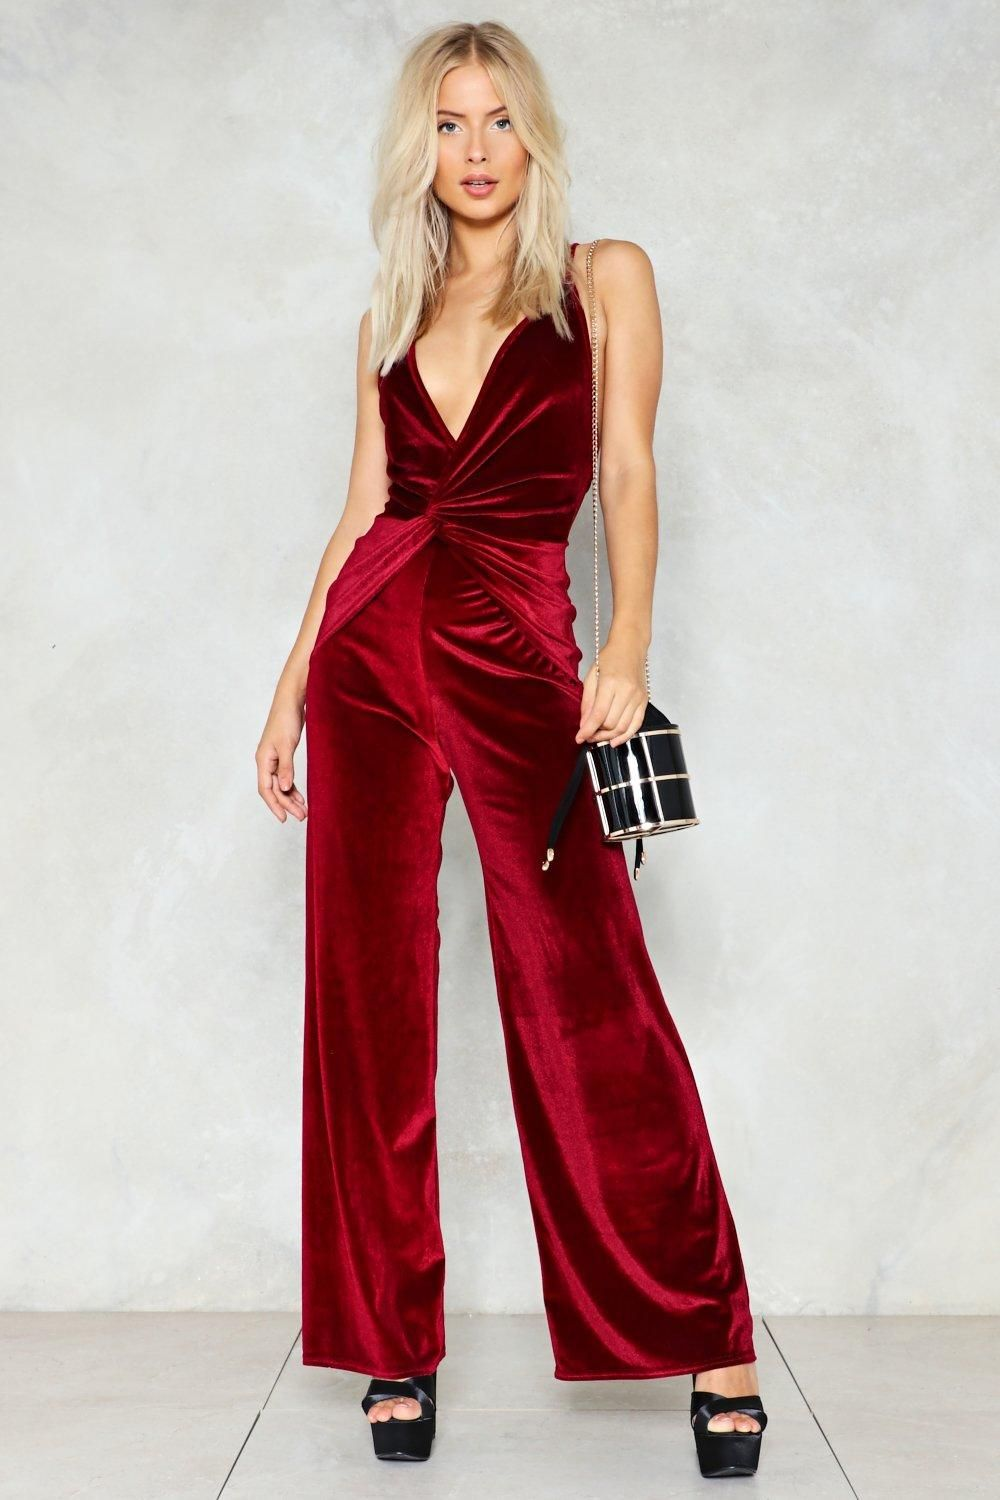 Queen of the night velvet jumpsuit wide legs neckline and silhouettes